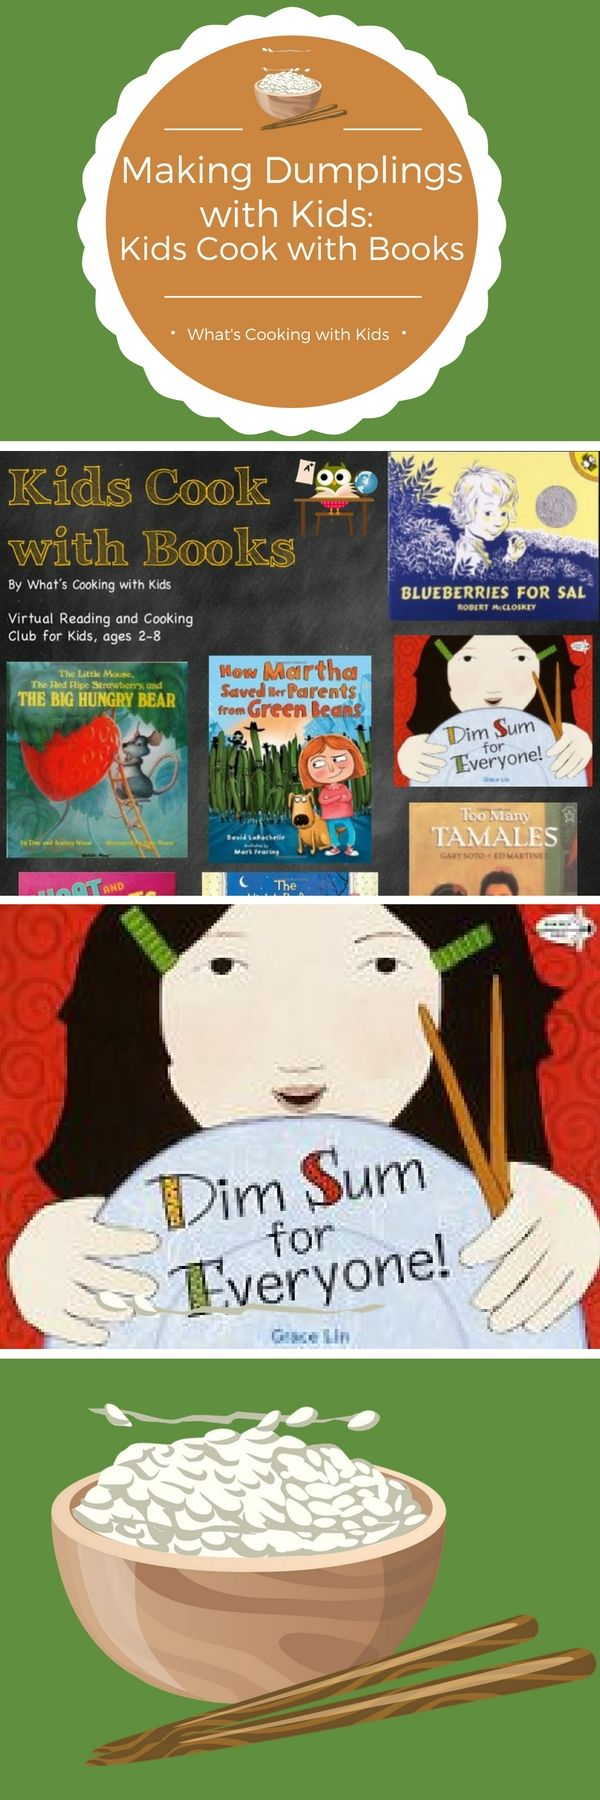 October's feature for Kids Cook with Books is Dim Sum for Everyone.  After you read this book with your kids, make our delicious dumpling recipe together.